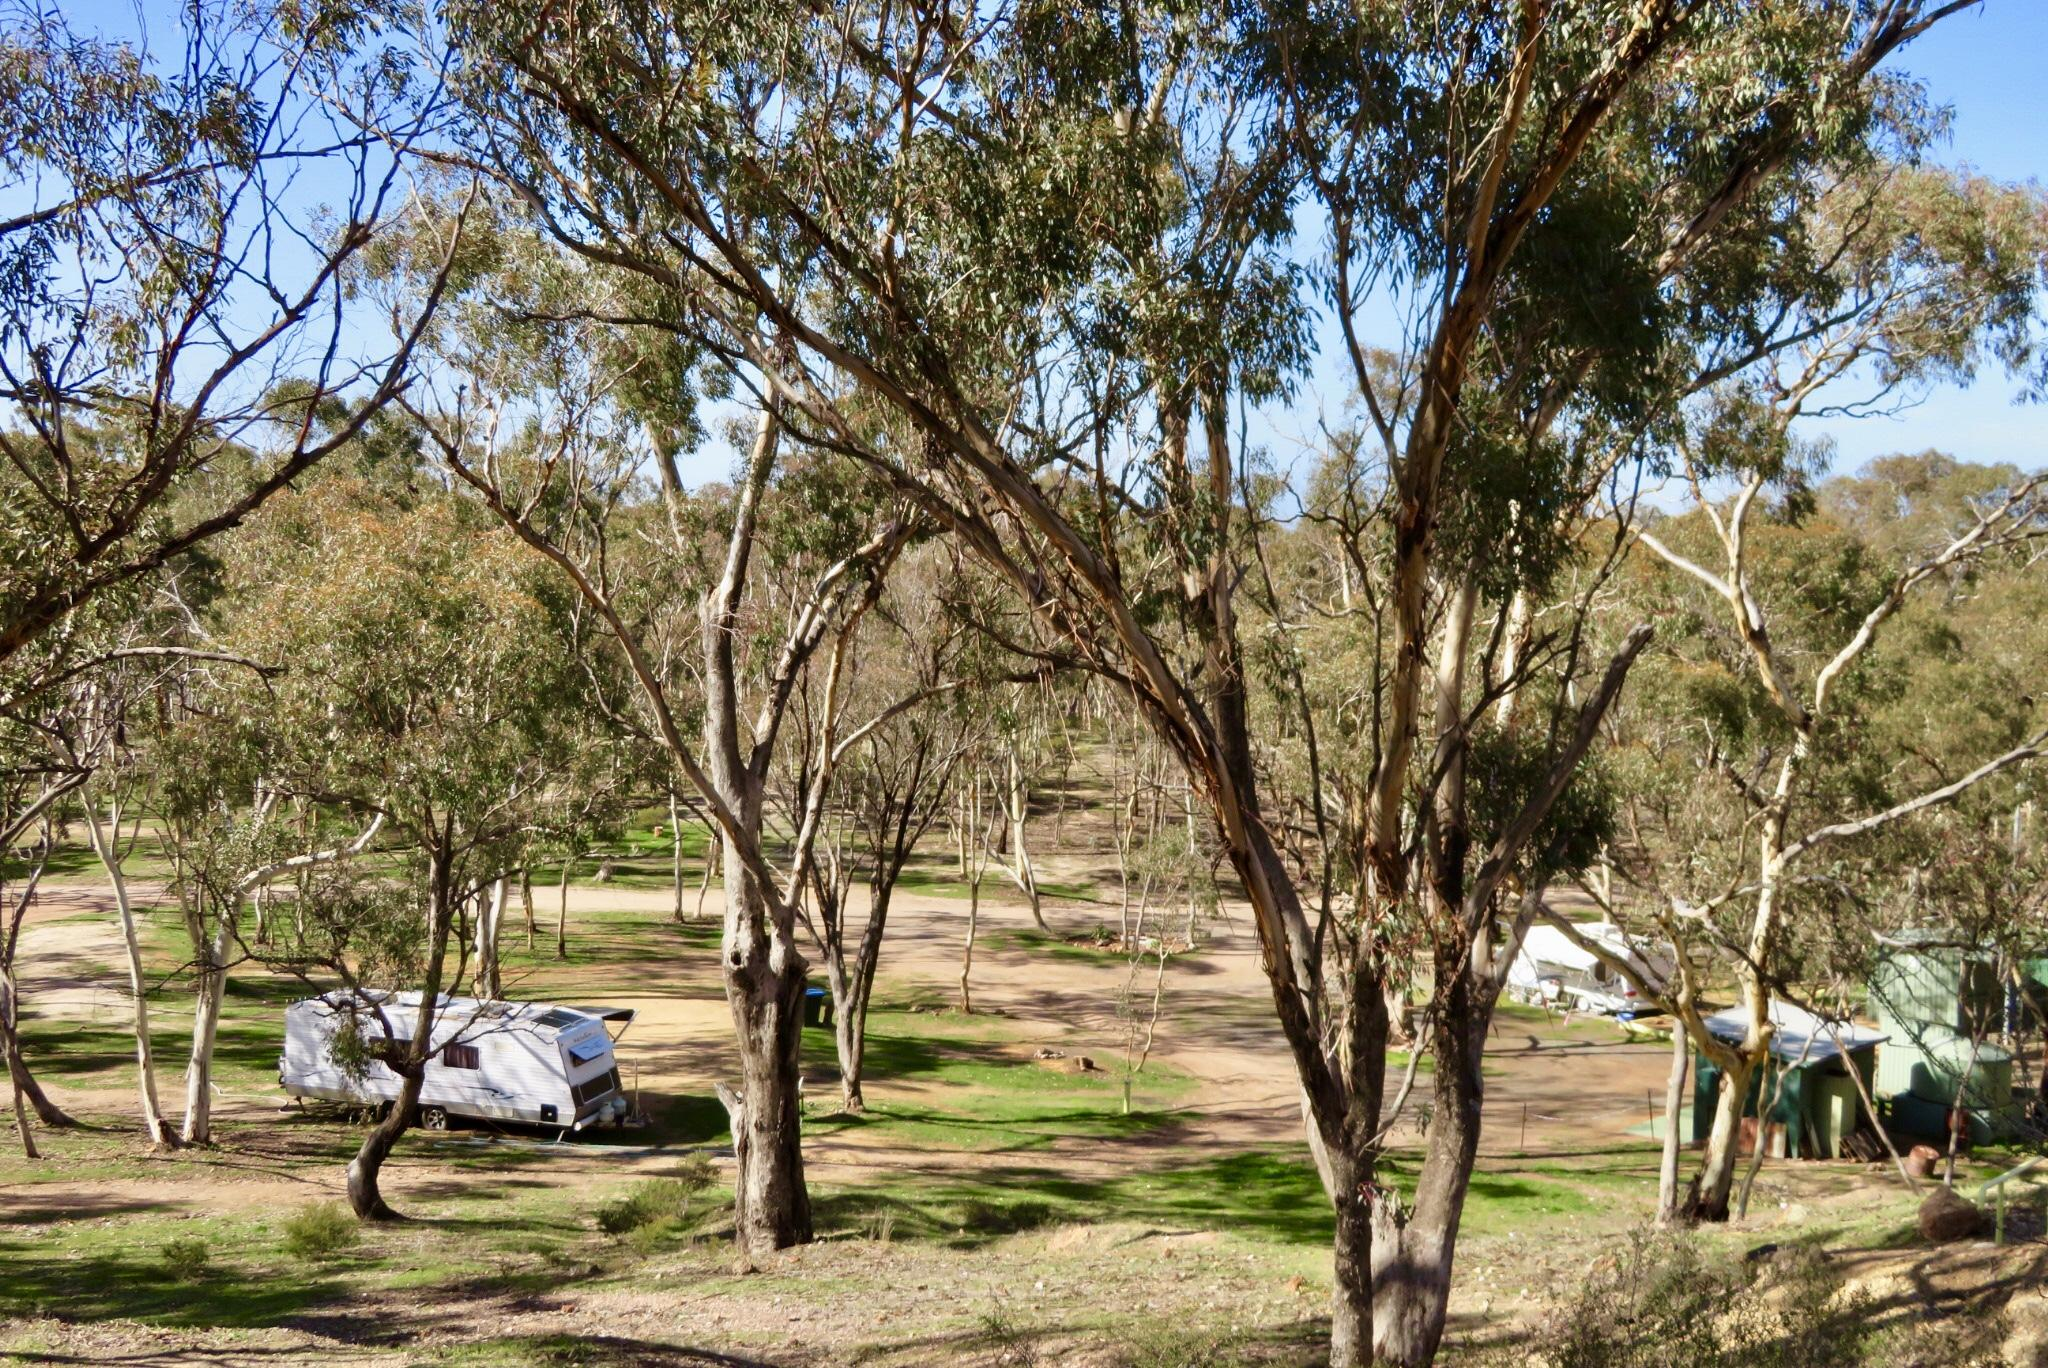 Hard Hill Tourist Reserve camping